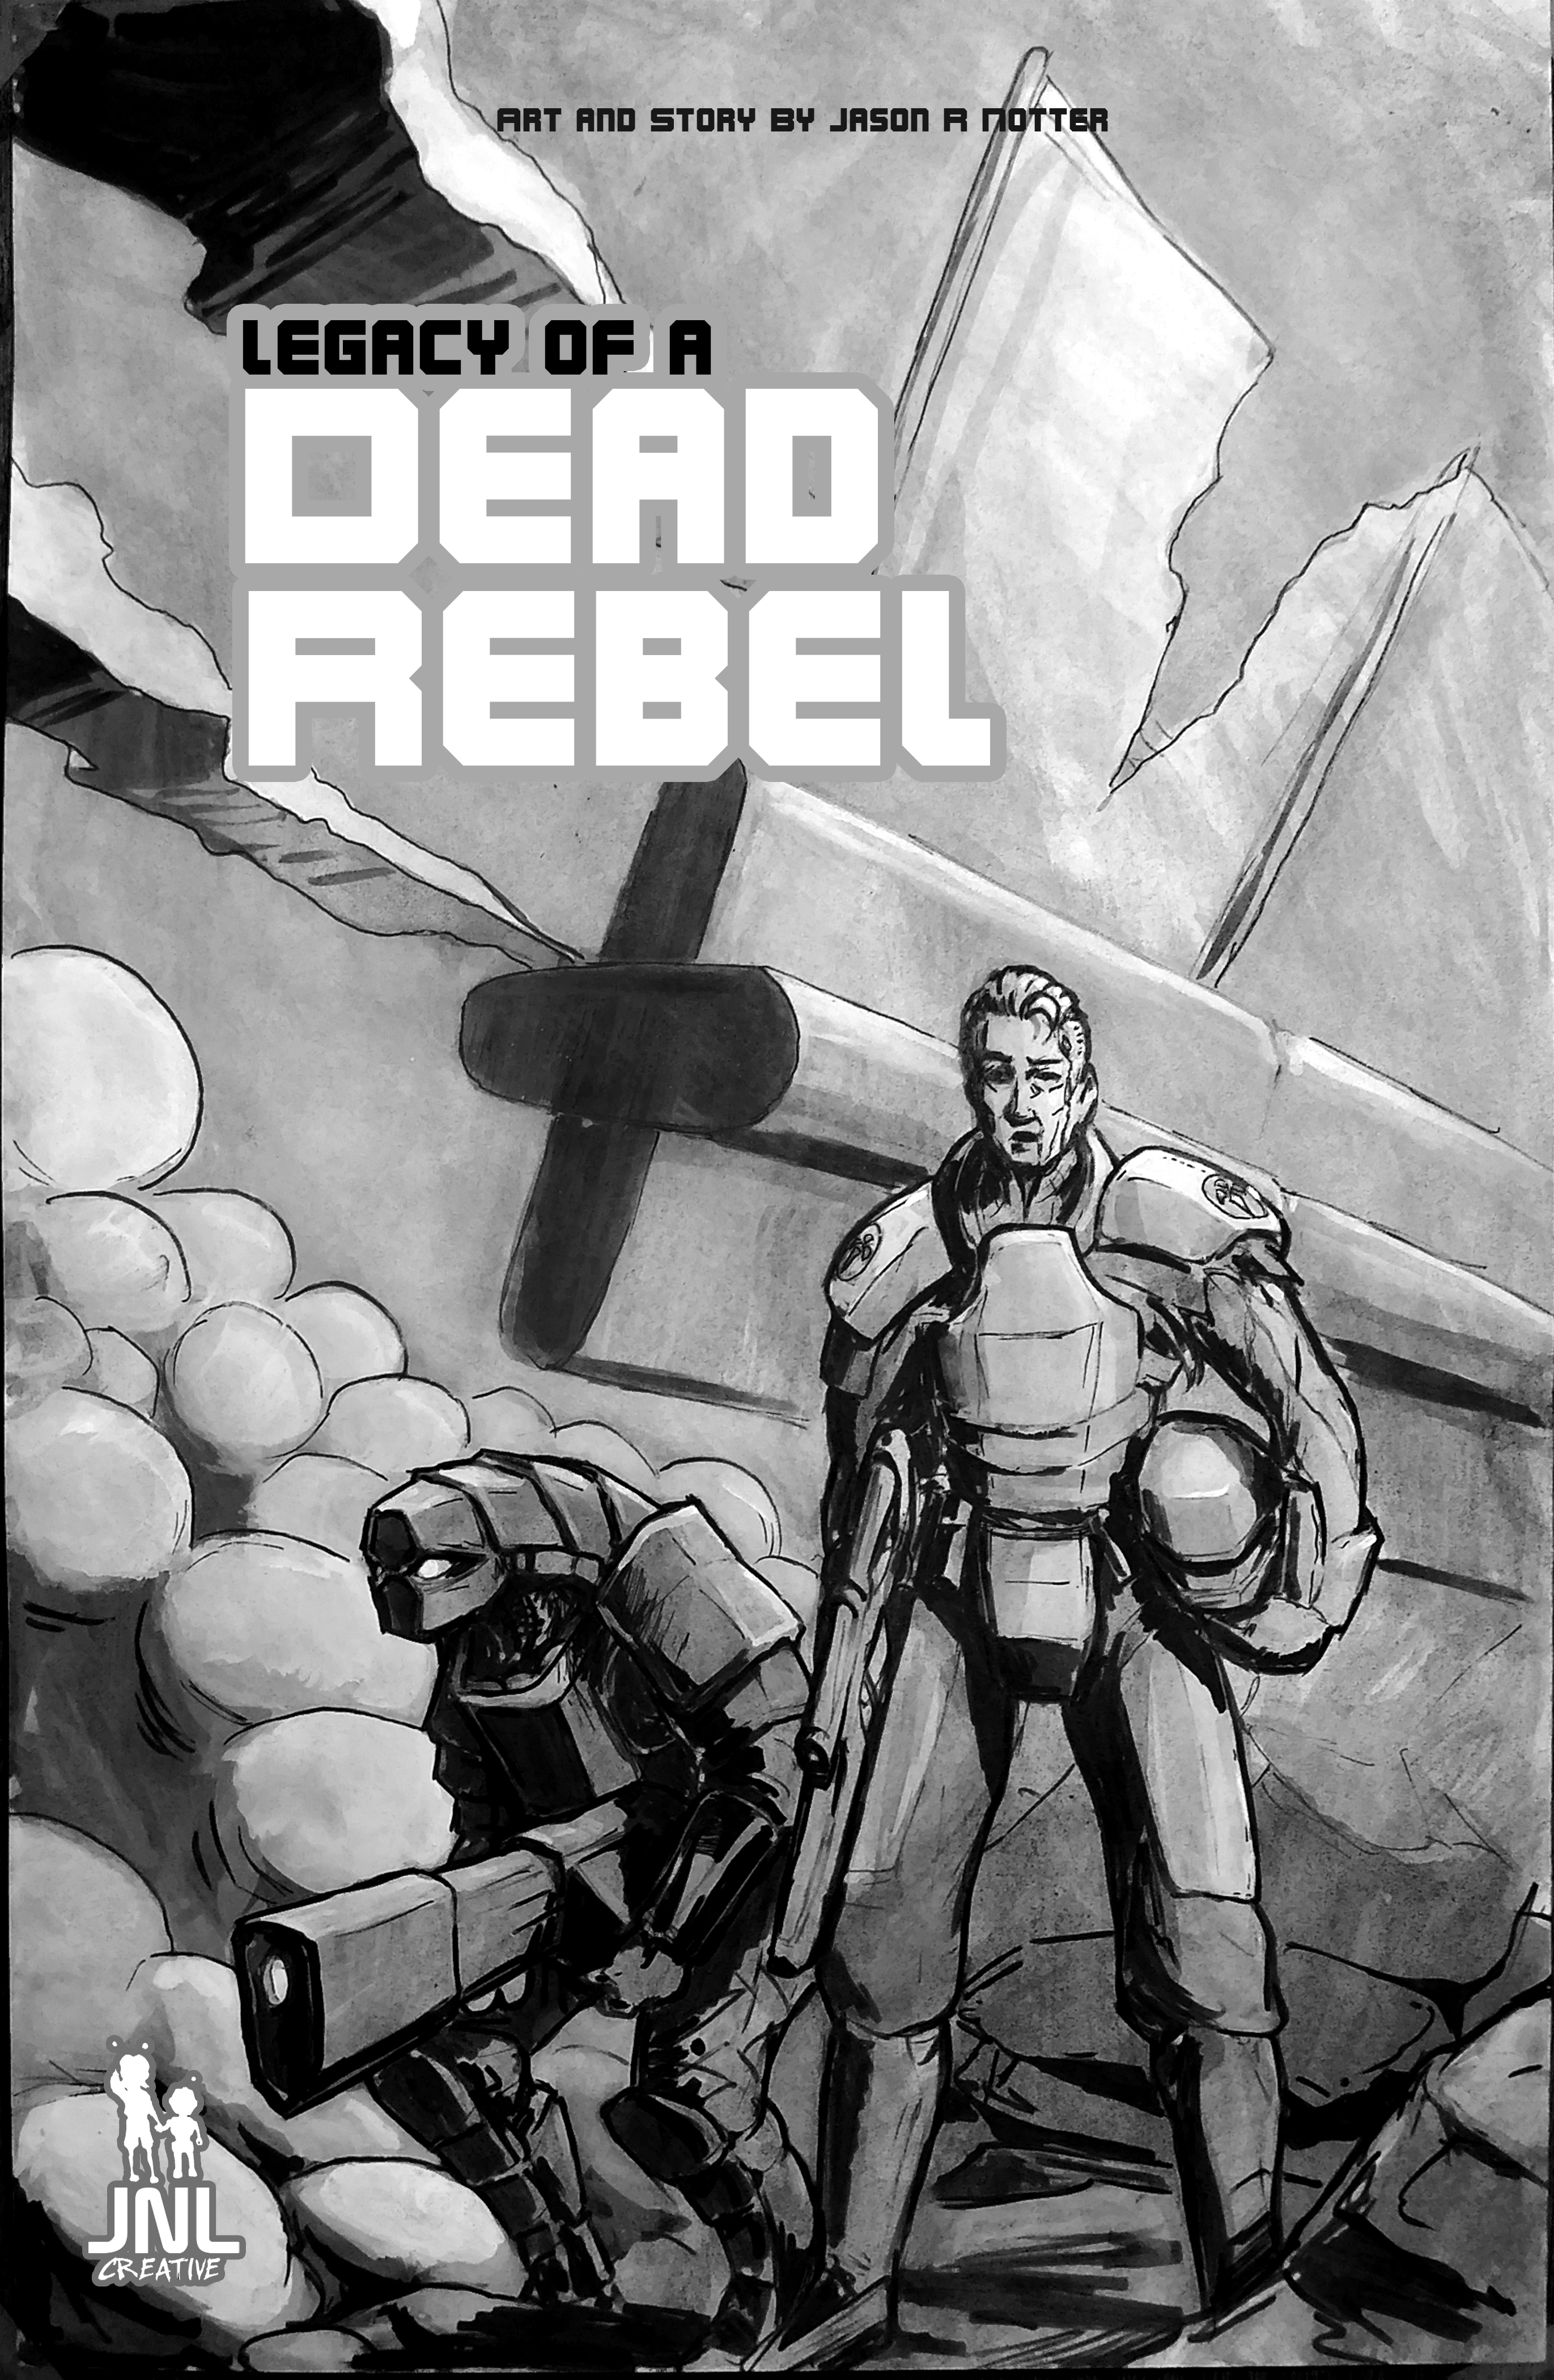 Dead Rebel: Traditional Comic (Original)